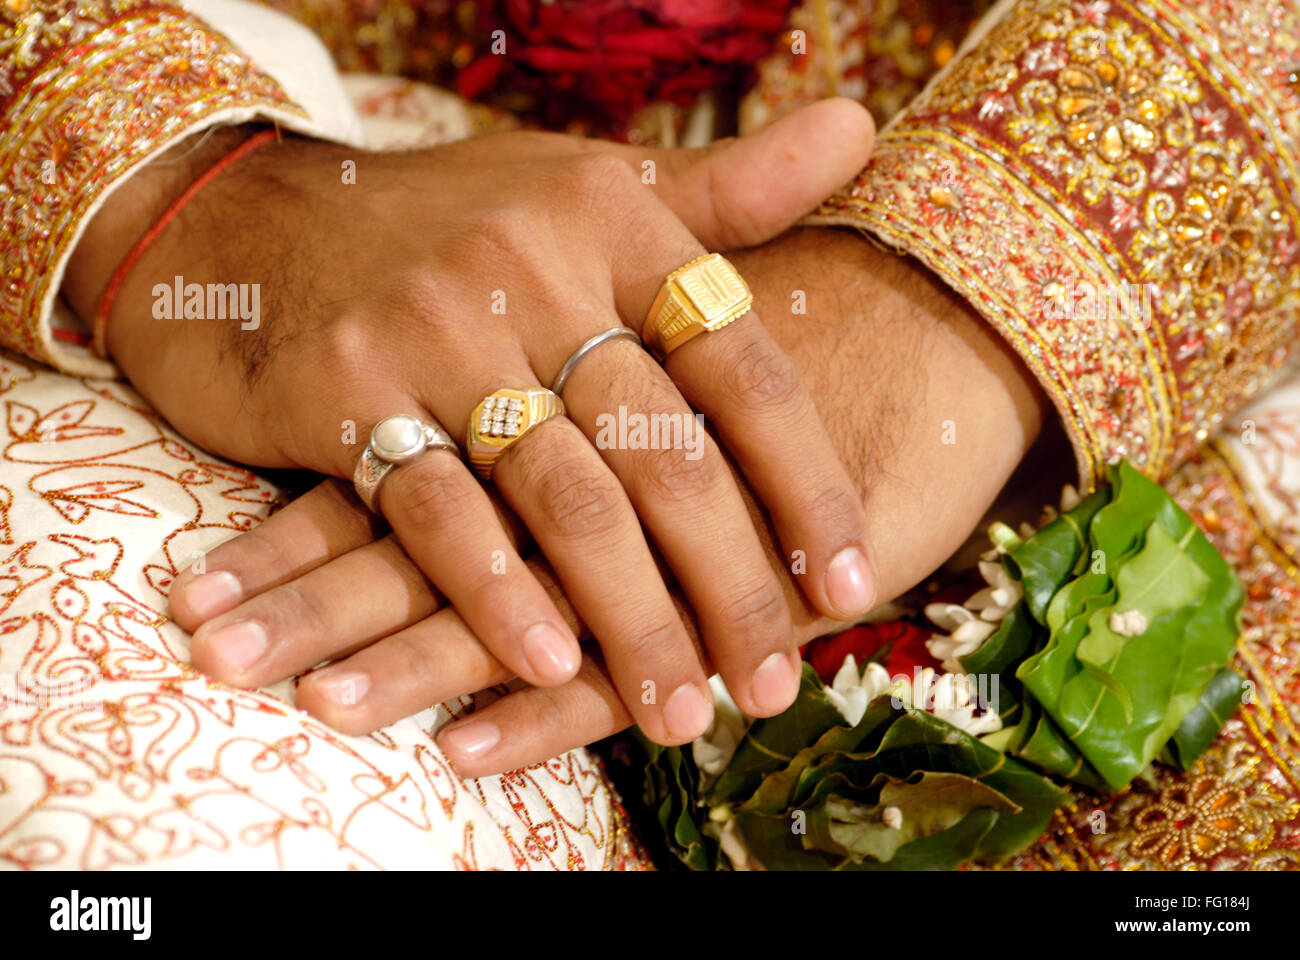 South Asian Indian Hindu wedding ceremony close up of hands cross